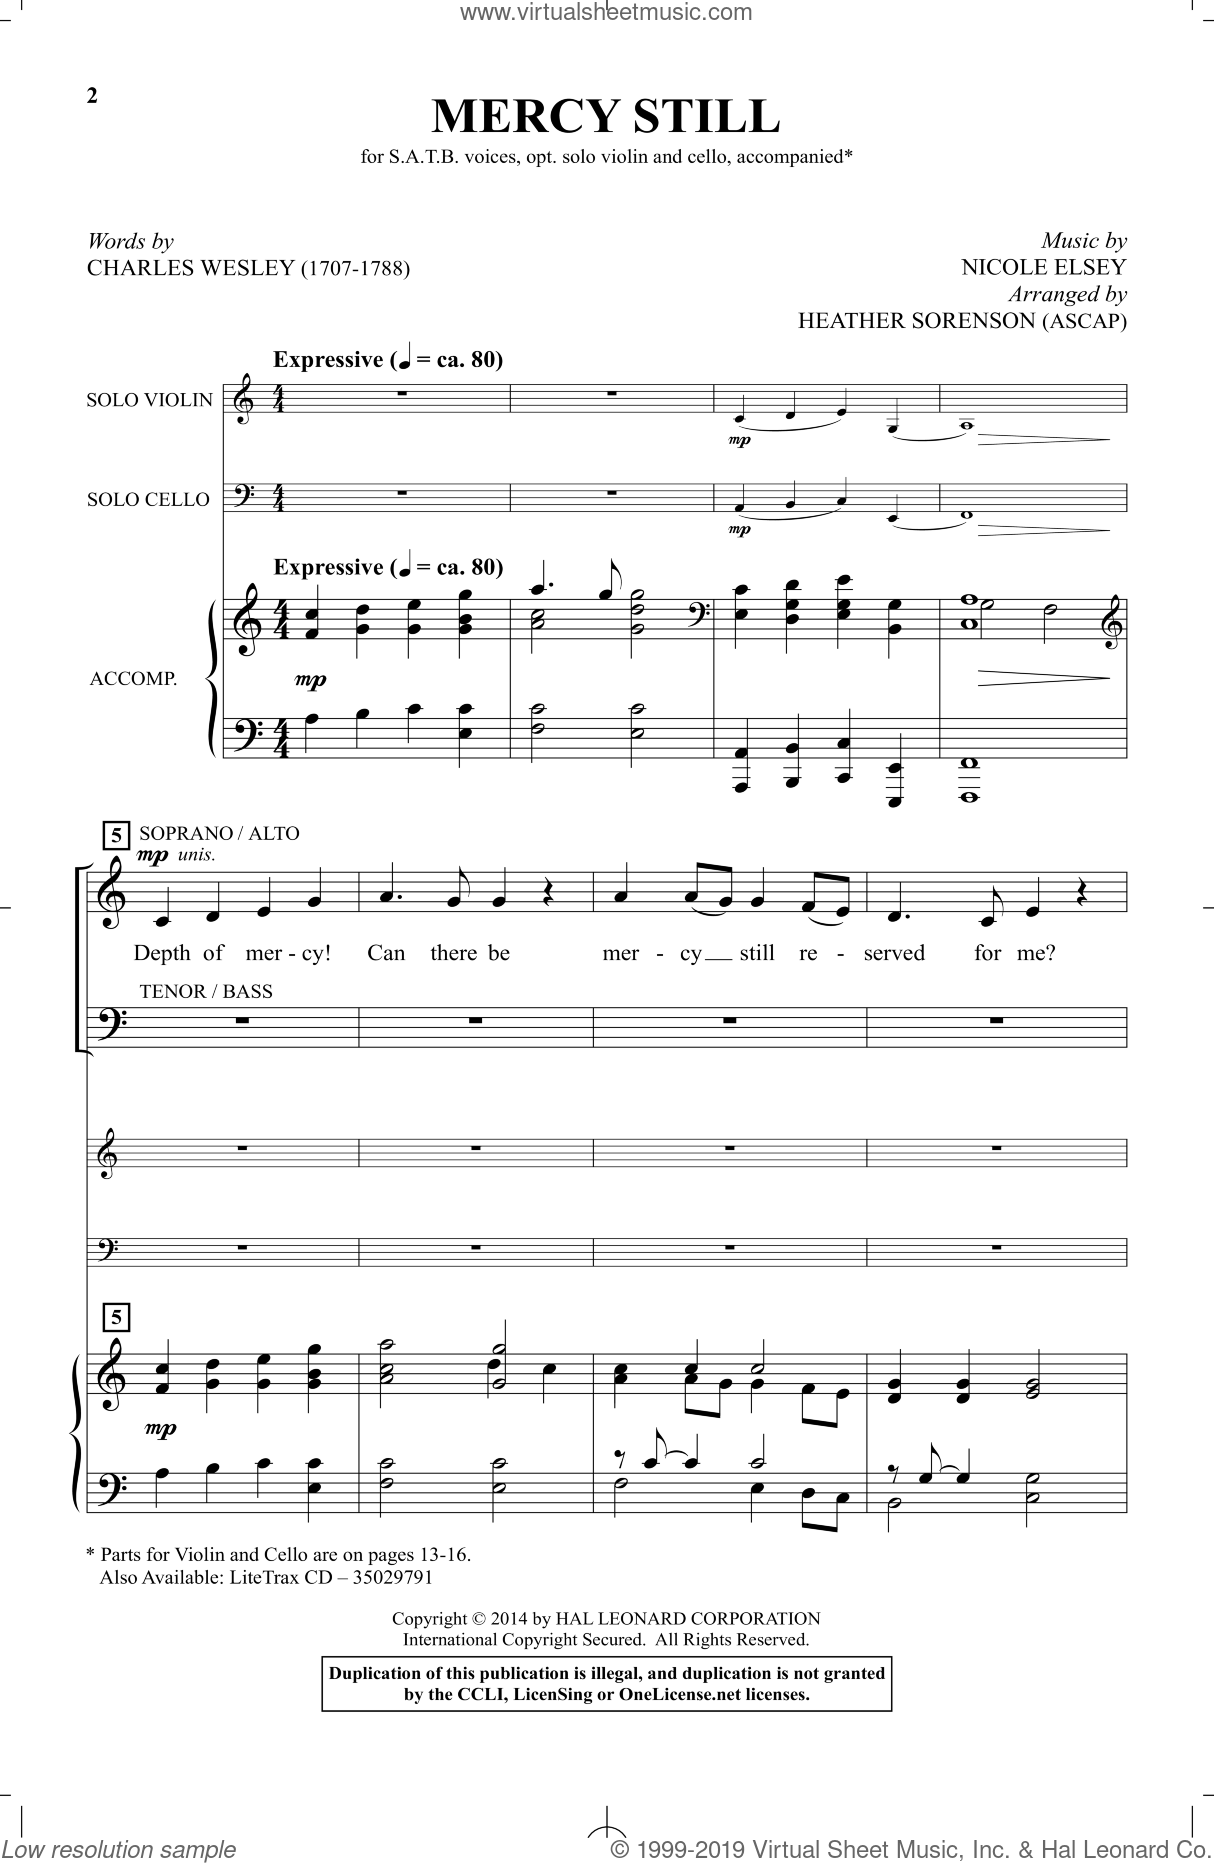 Mercy Still sheet music for choir by Charles Wesley, Heather Sorenson and Nicole Elsey, intermediate skill level